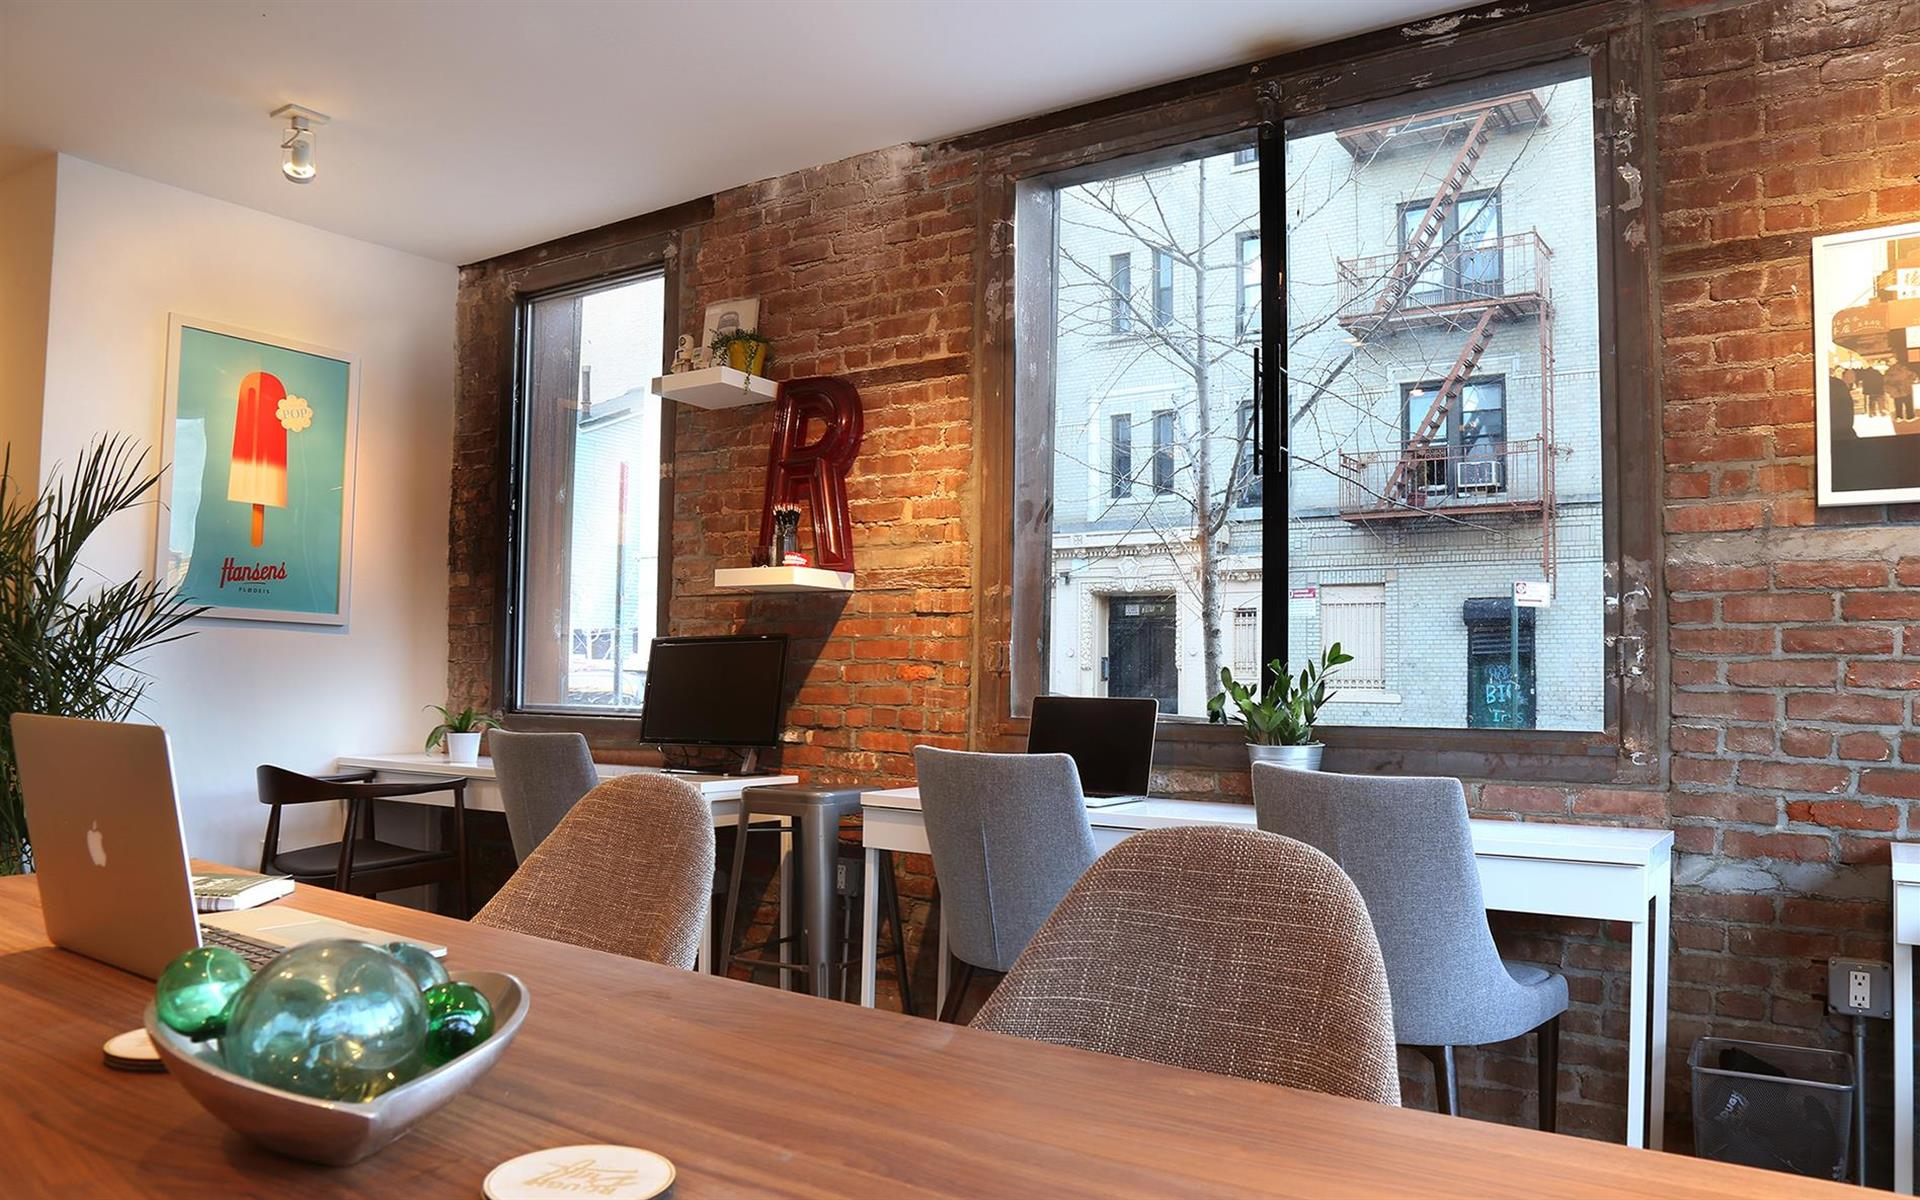 Rough Draft NYC - Brooklyn - Creative Coworking Space in Williamsburg